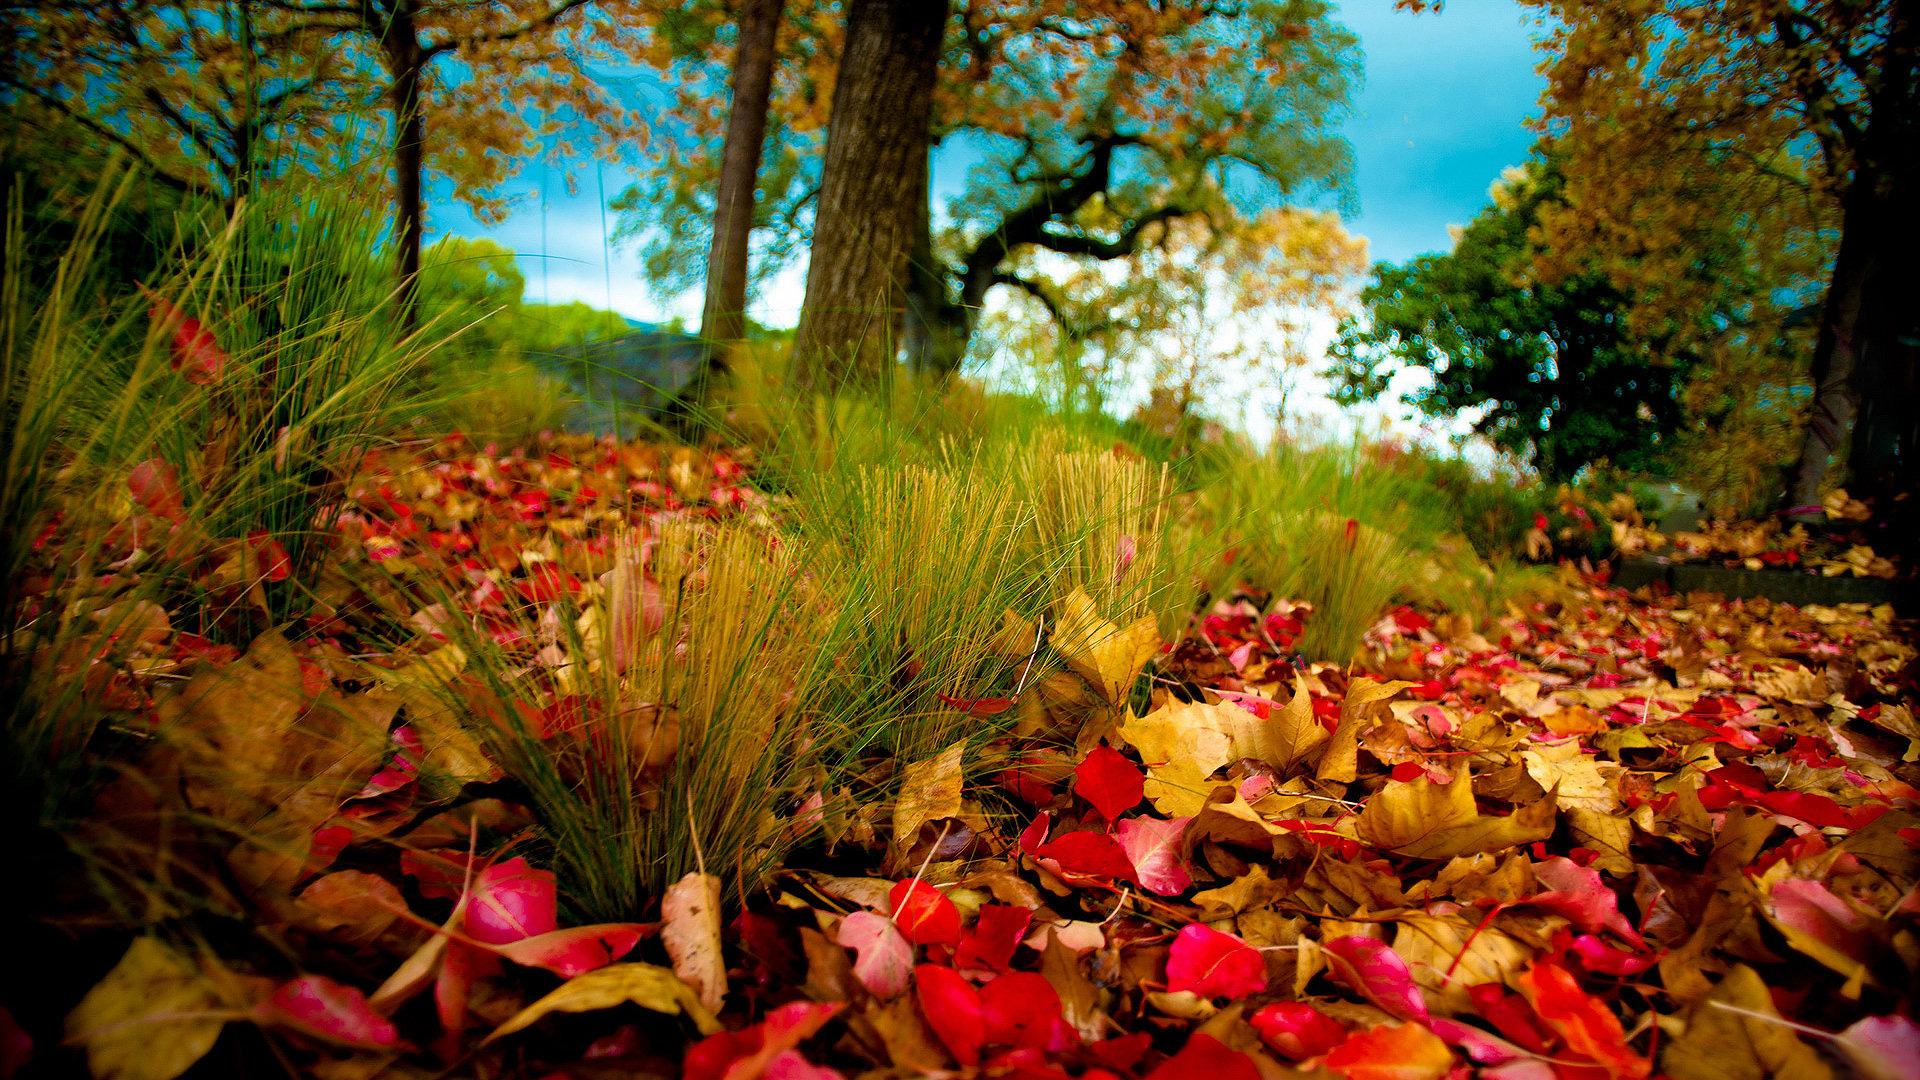 autumn wallpaper landscape